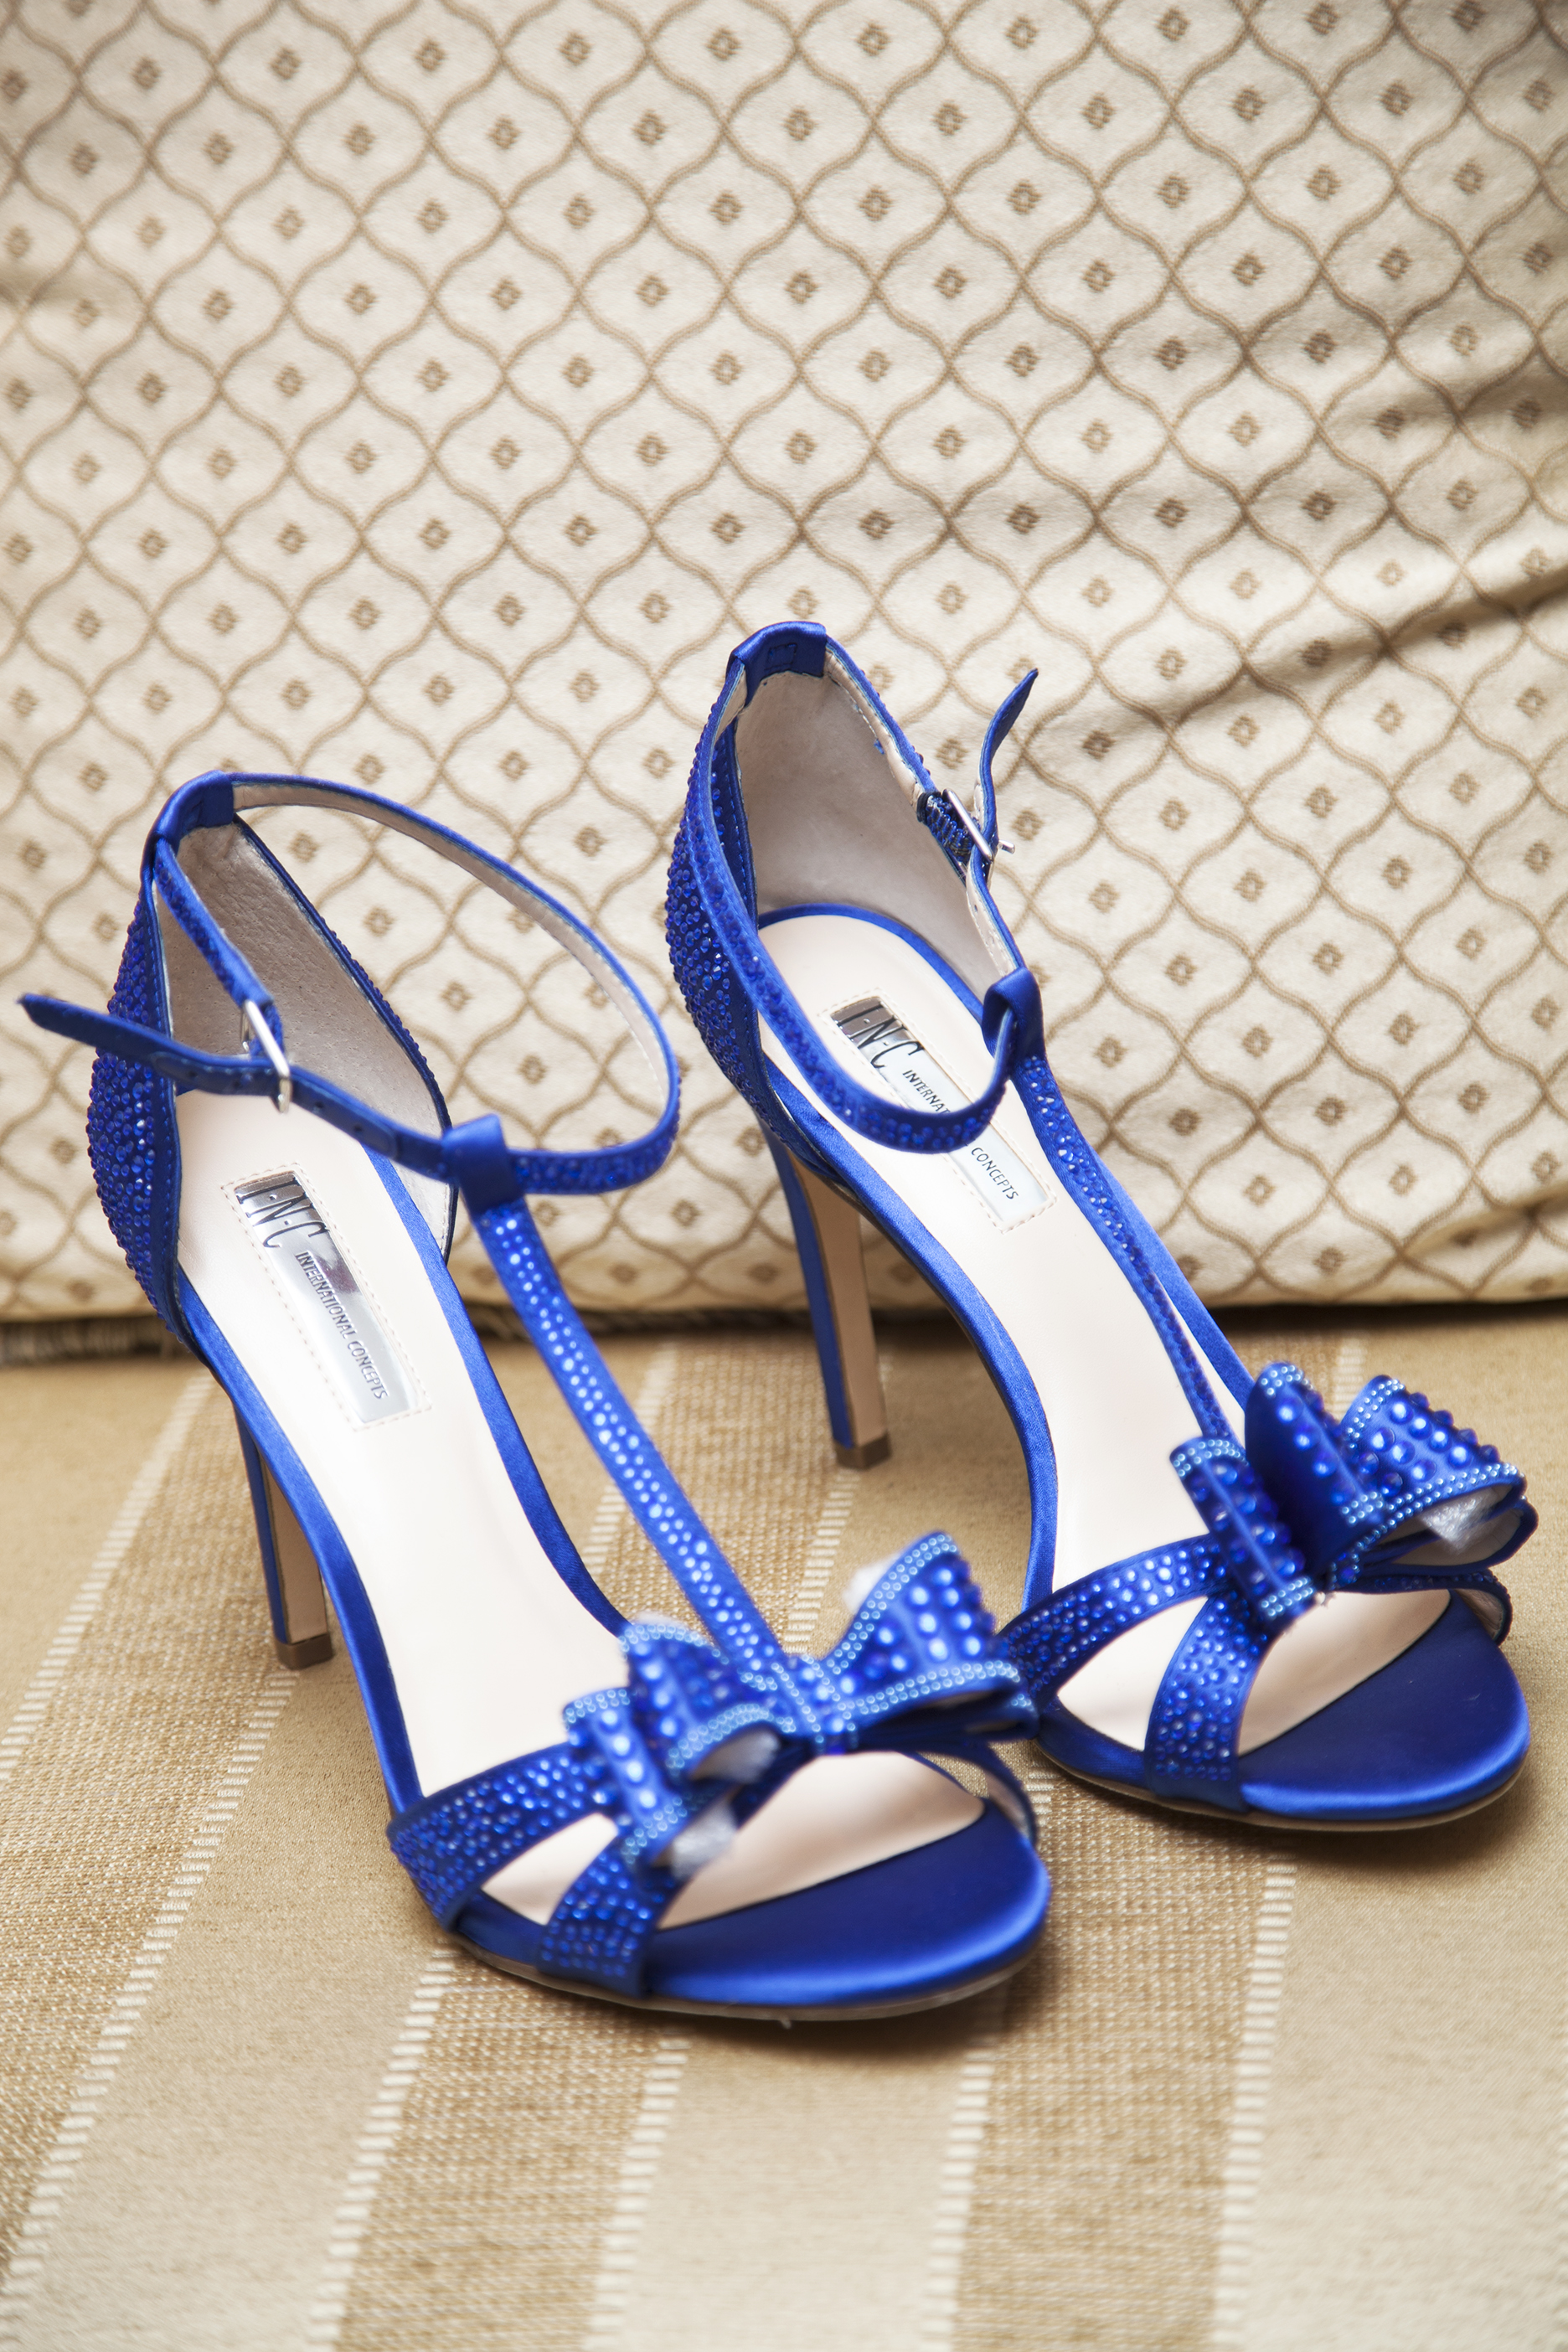 Blue Shoes Wedding Karimah Gheddai Photography